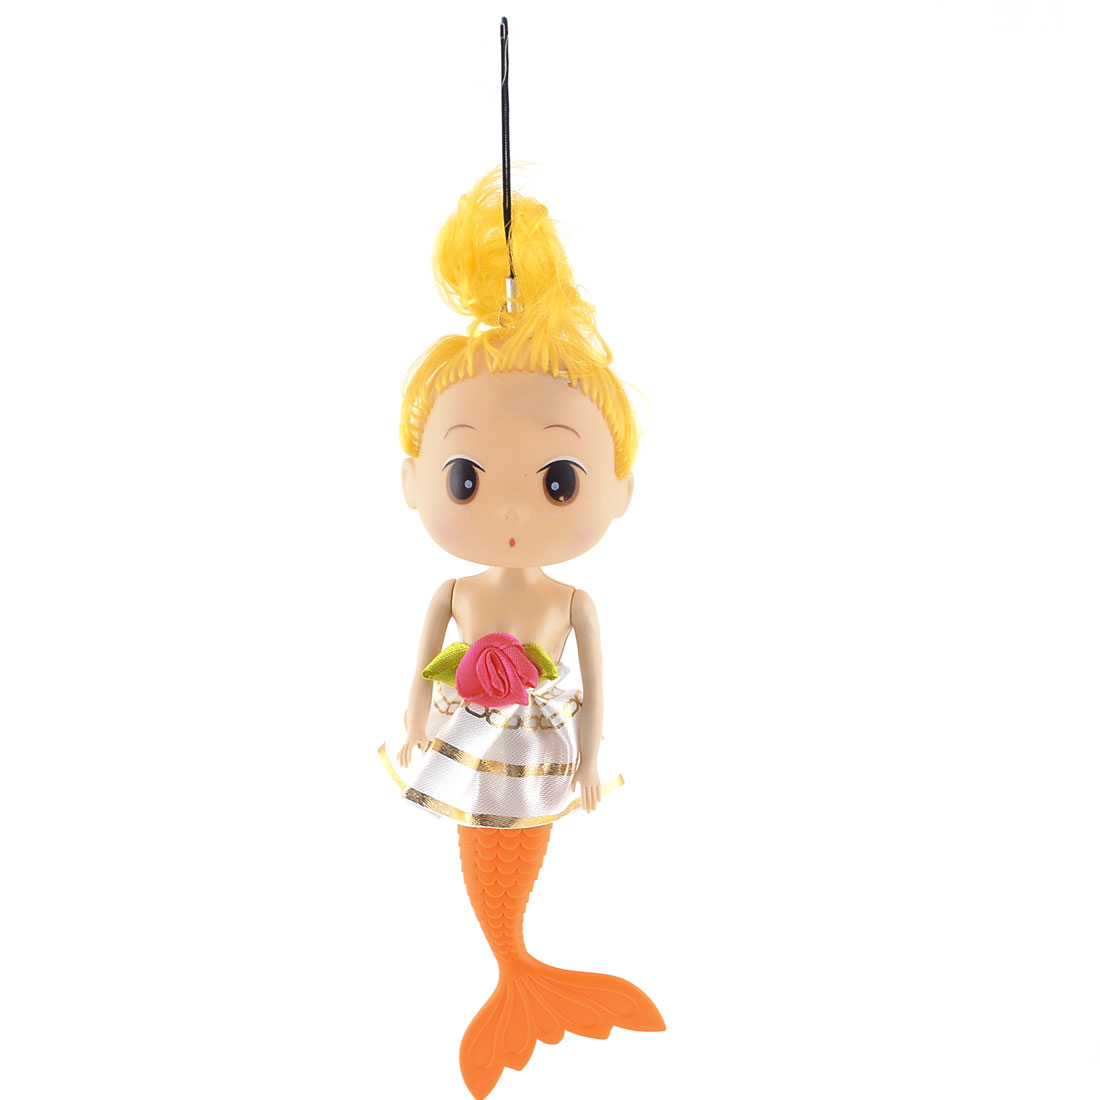 White Dress Yellow Curly Hair Mermaid Girl Toy Doll Handbag Pendant for Children